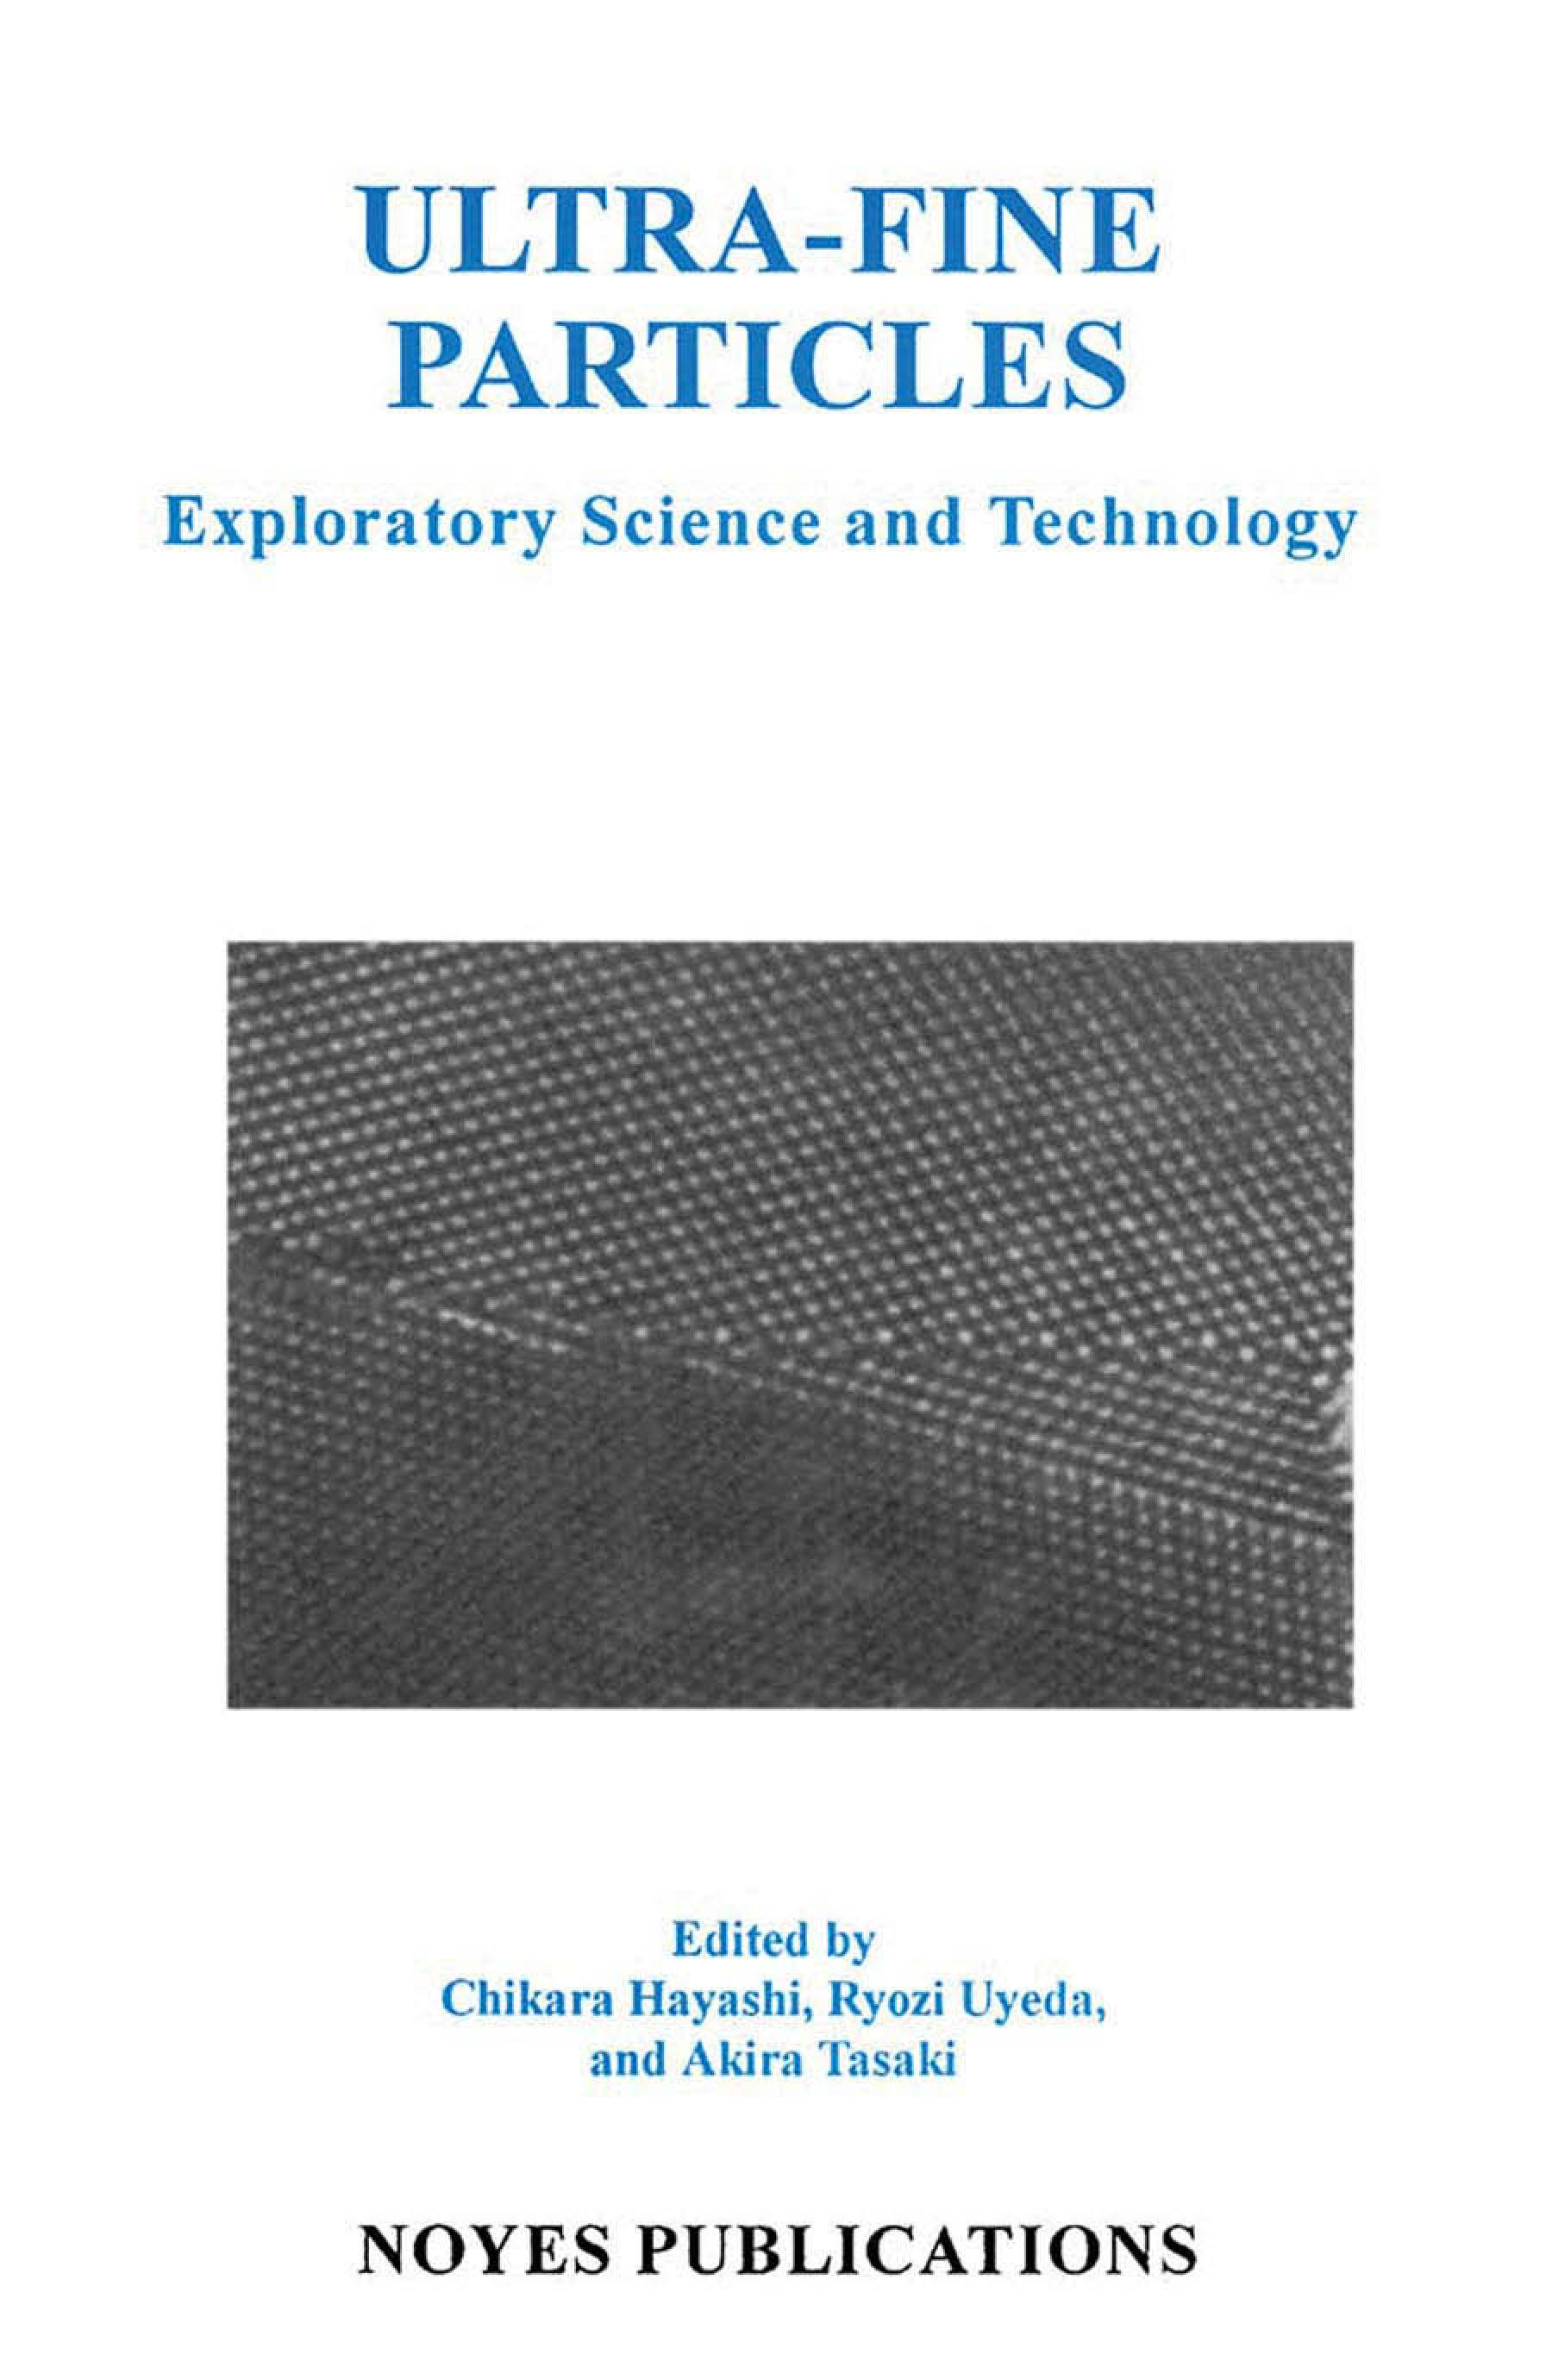 Ultra-Fine Particles: Exploratory Science and Technology